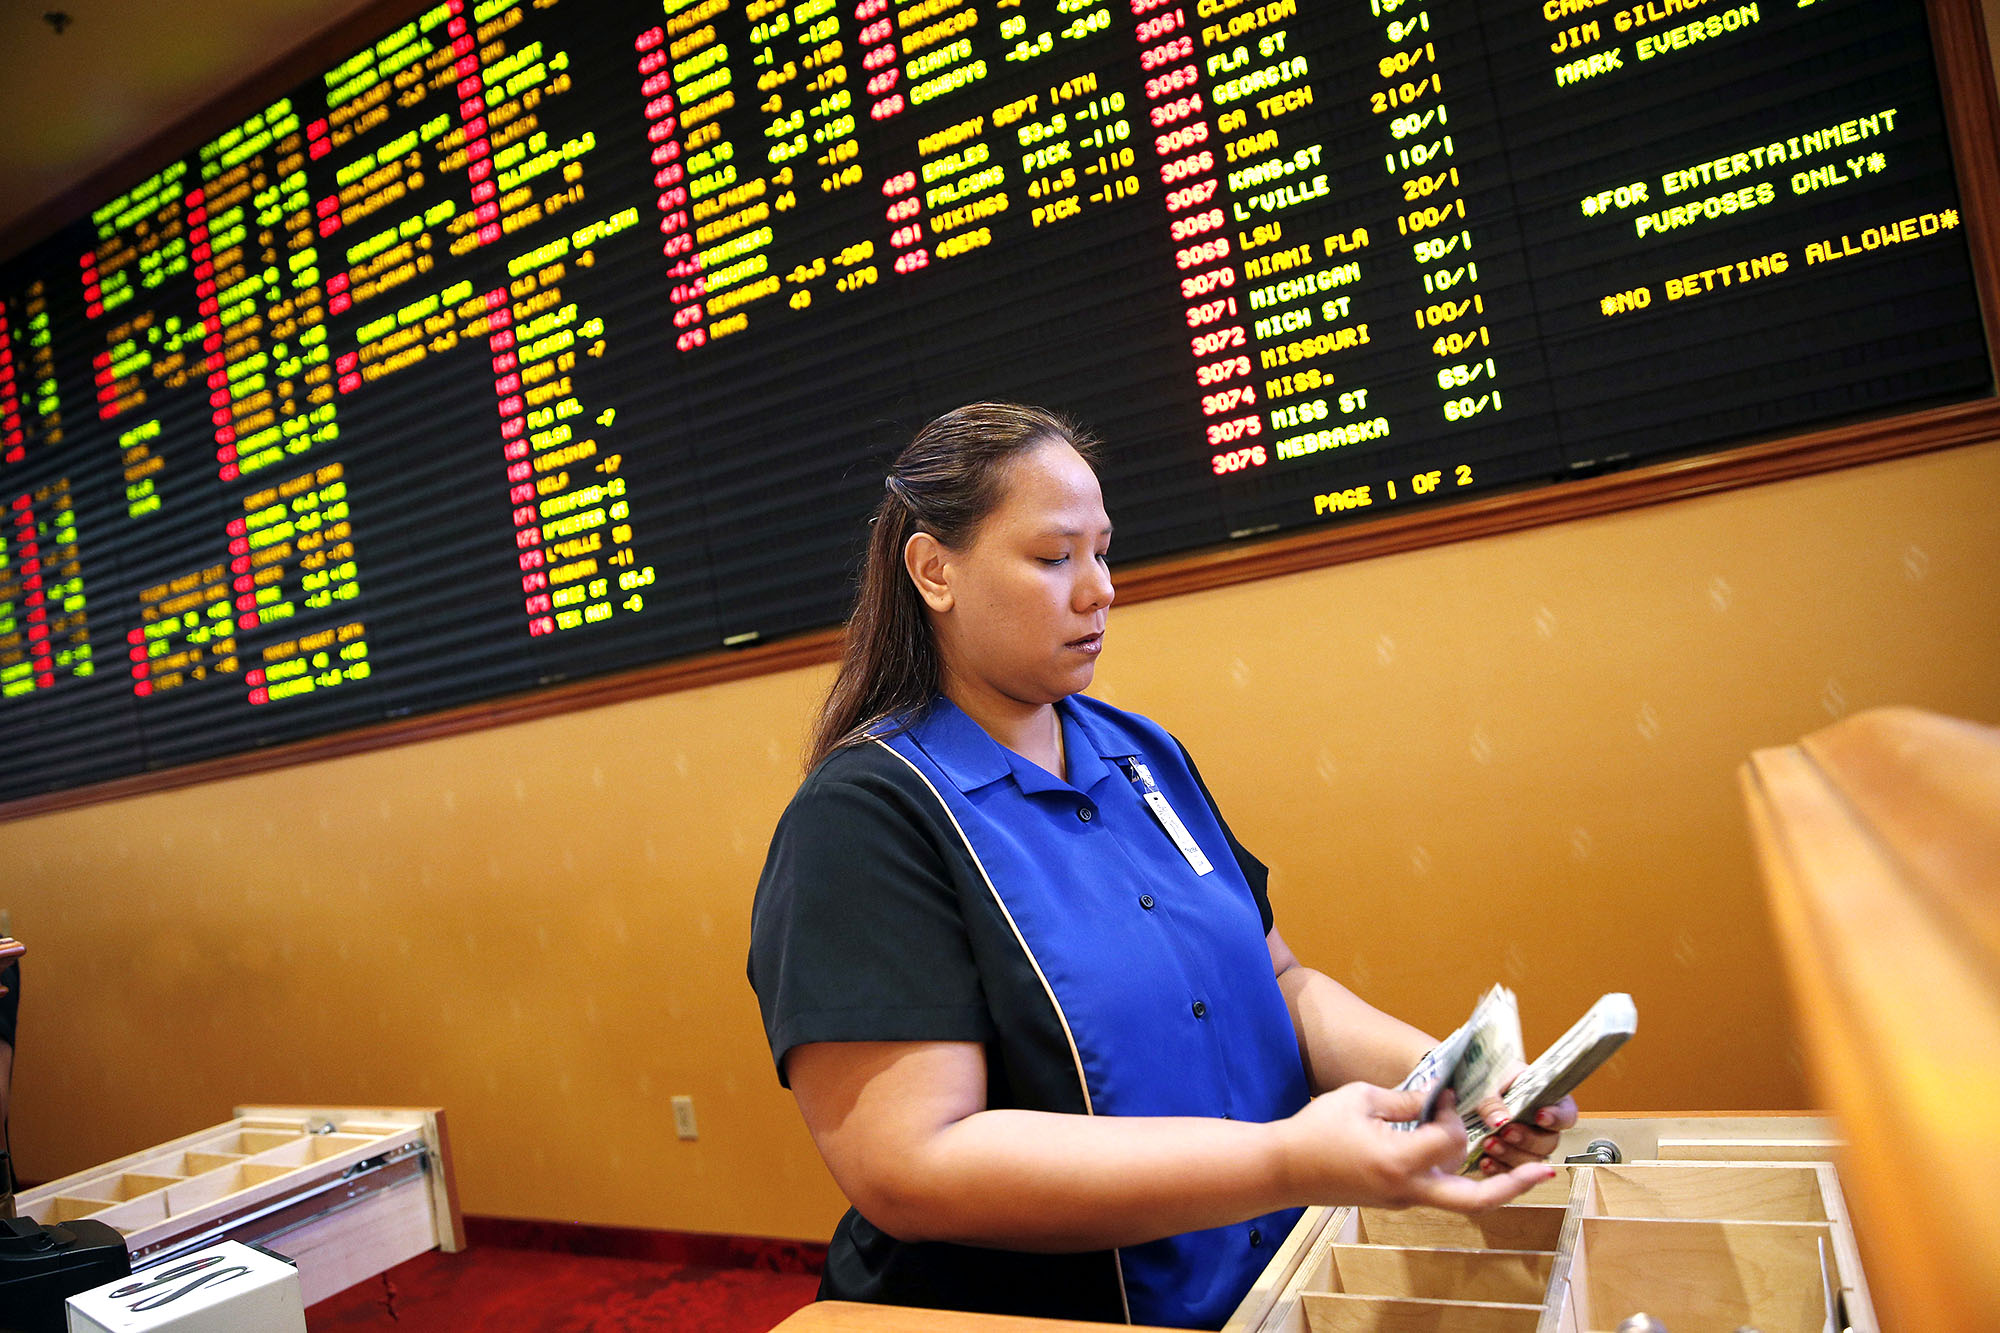 sports betting new jersey lawsuit against parents